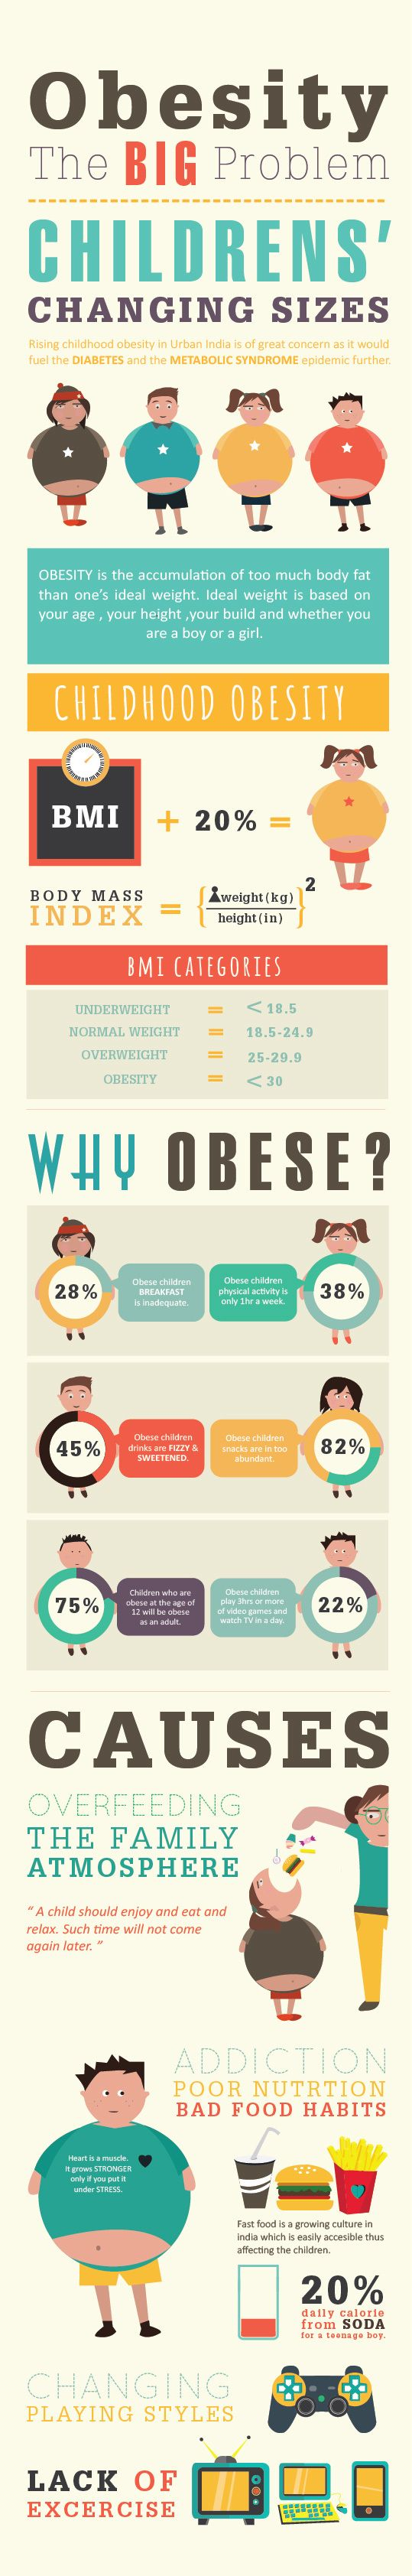 research papers on child obesity Obesity prevention source child obesity adult obesity research conducted at harvard first linked tv watching to obesity more than 25 years ago.